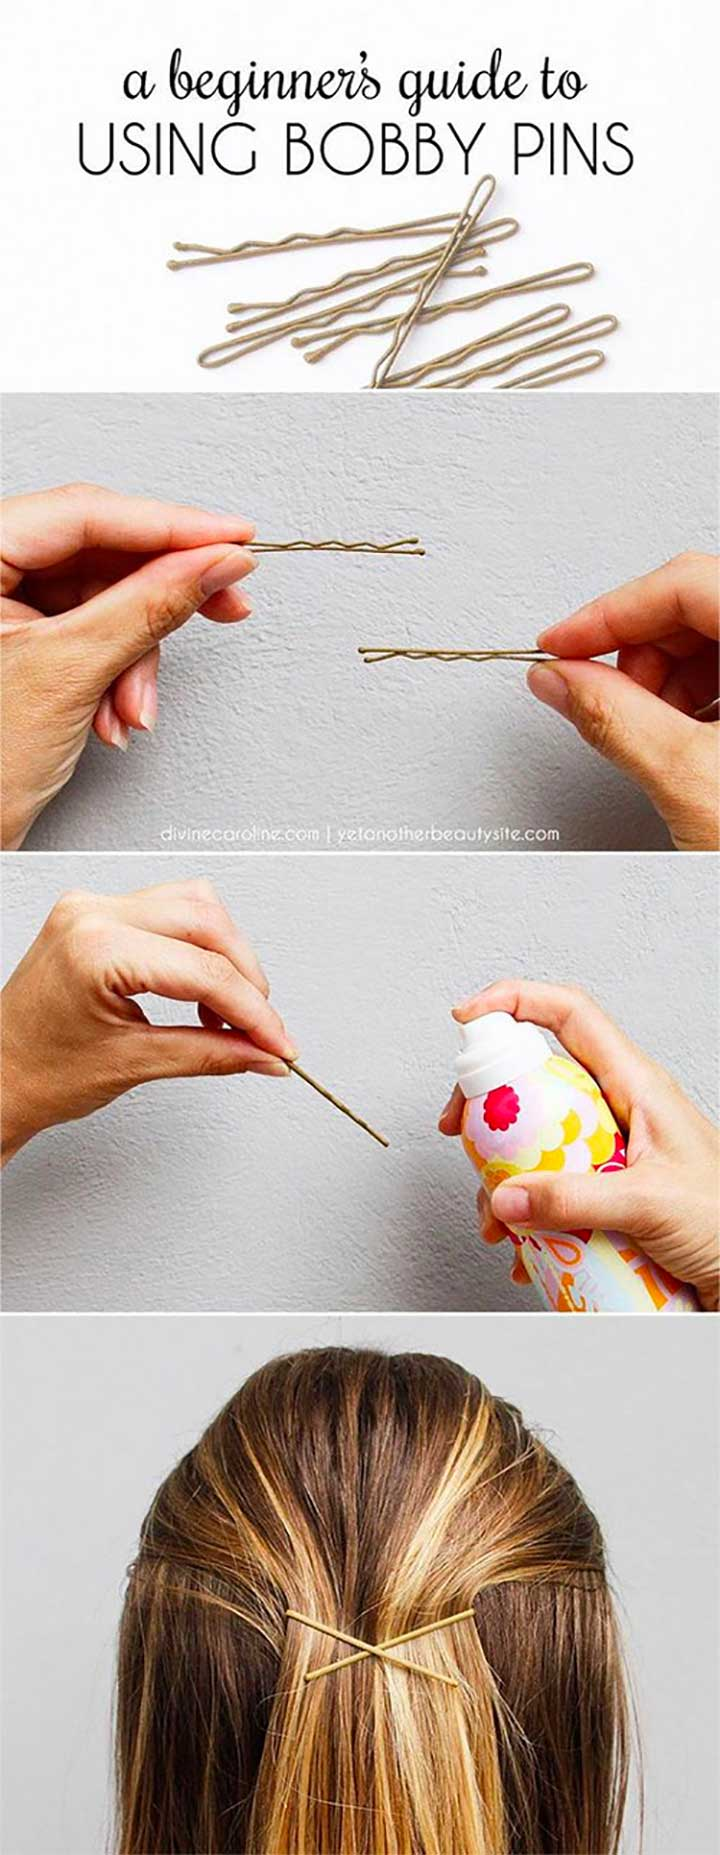 A Beginners Guide To Using Bobby Pins